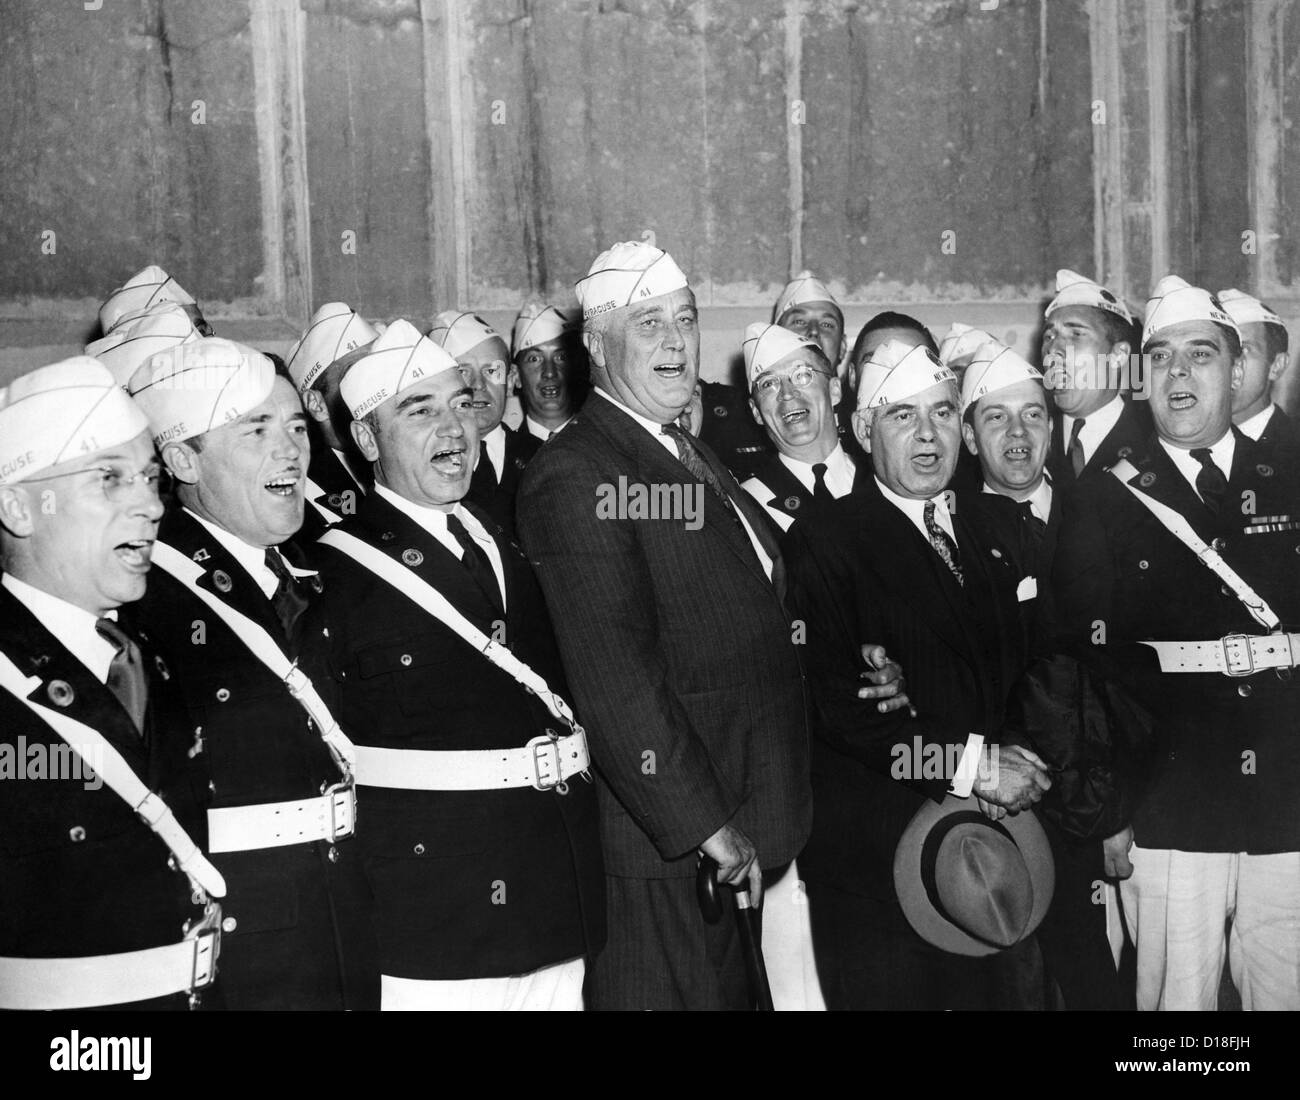 President Franklin Roosevelt singing 'Home on the Range' with the American Legion Glee Club of Syracuse, - Stock Image